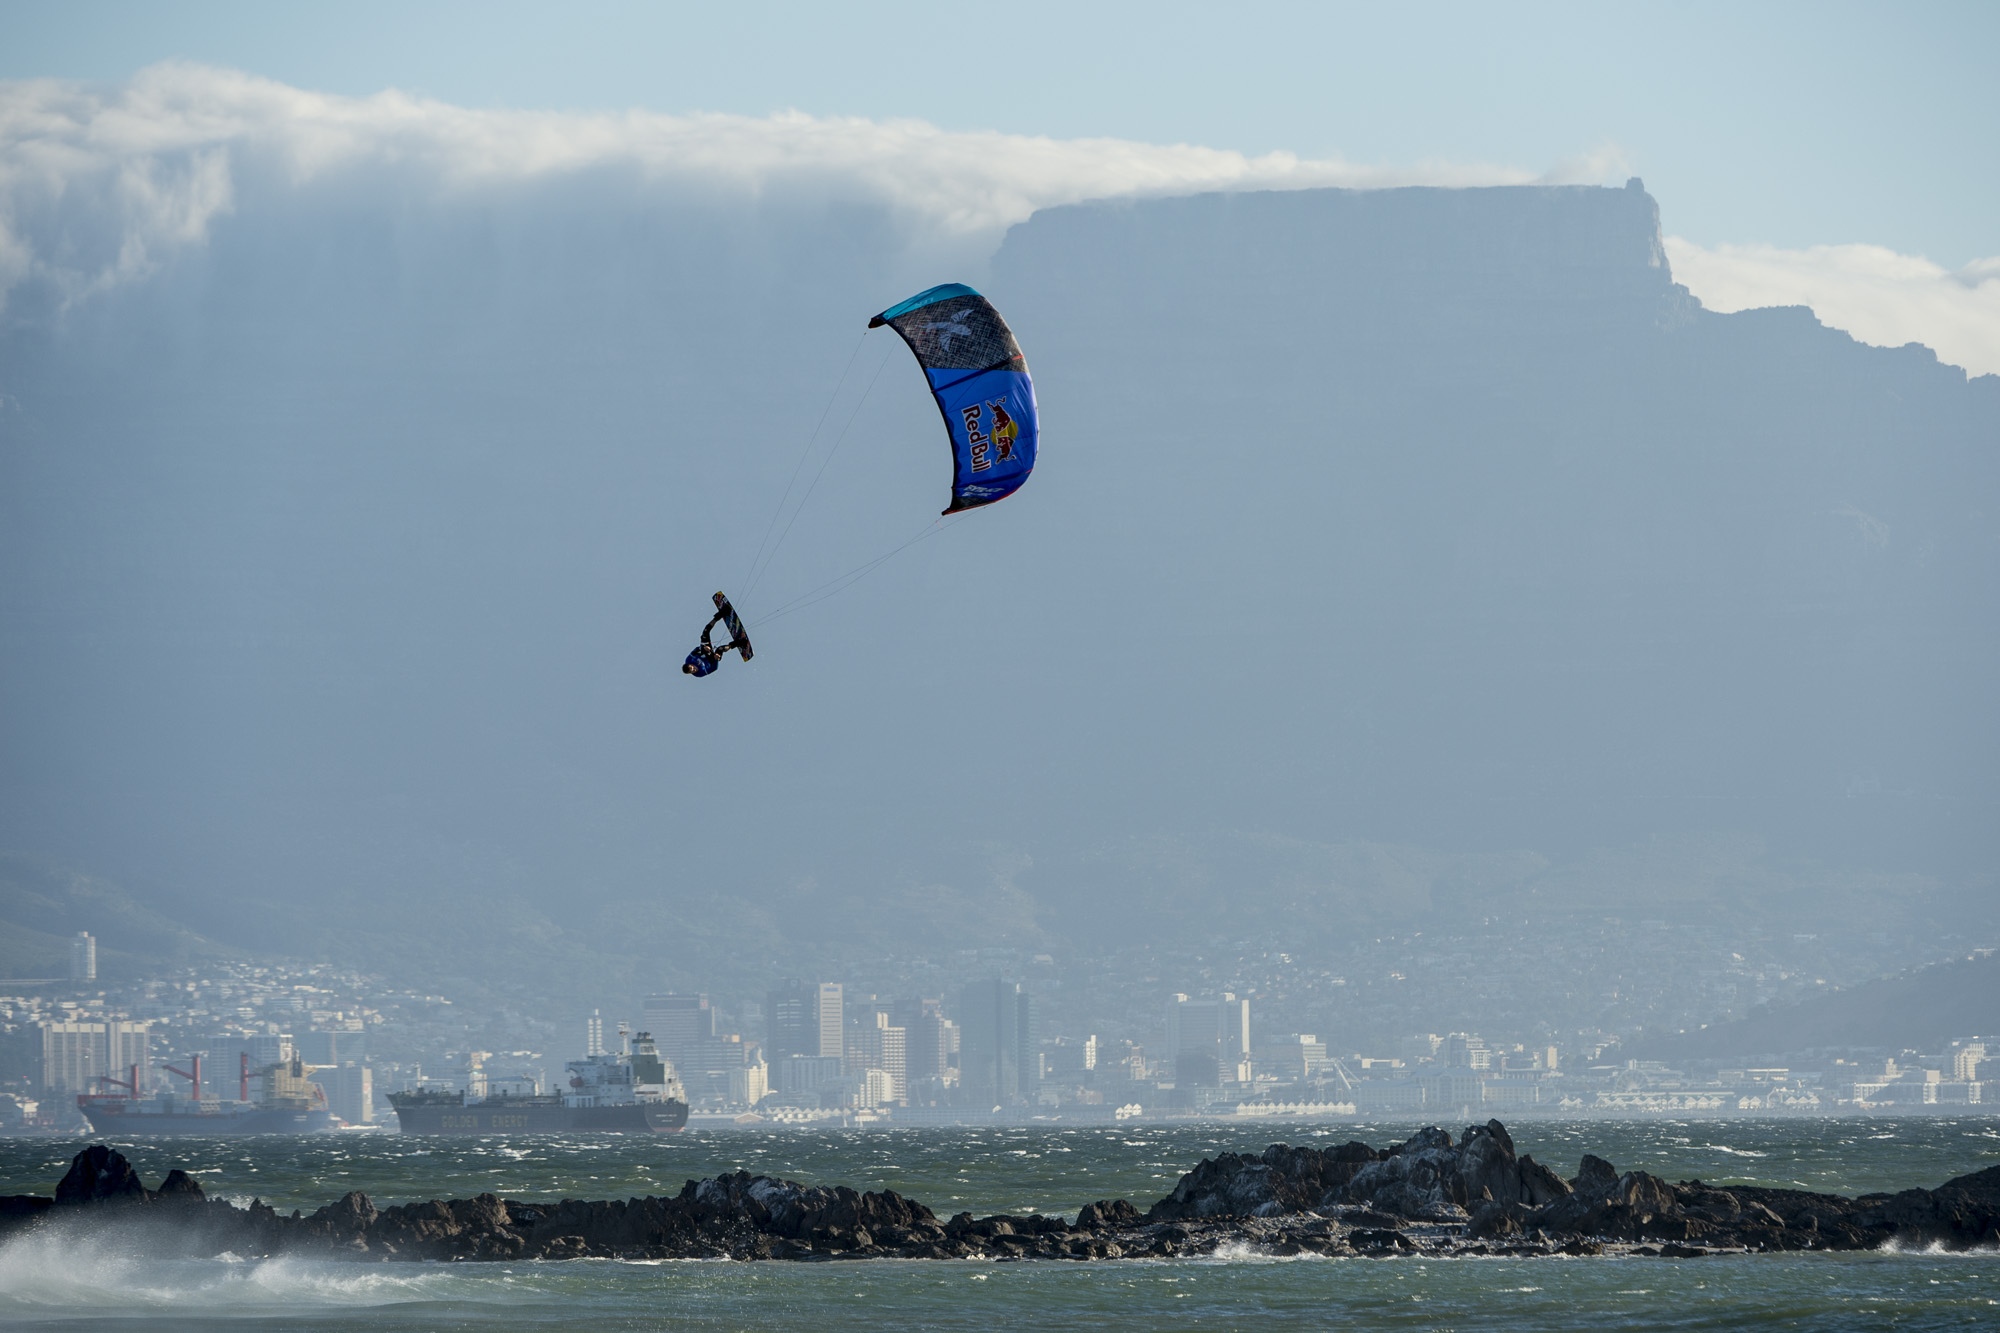 Round 1 results for the Red Bull King of the Air Kiteboarding contest